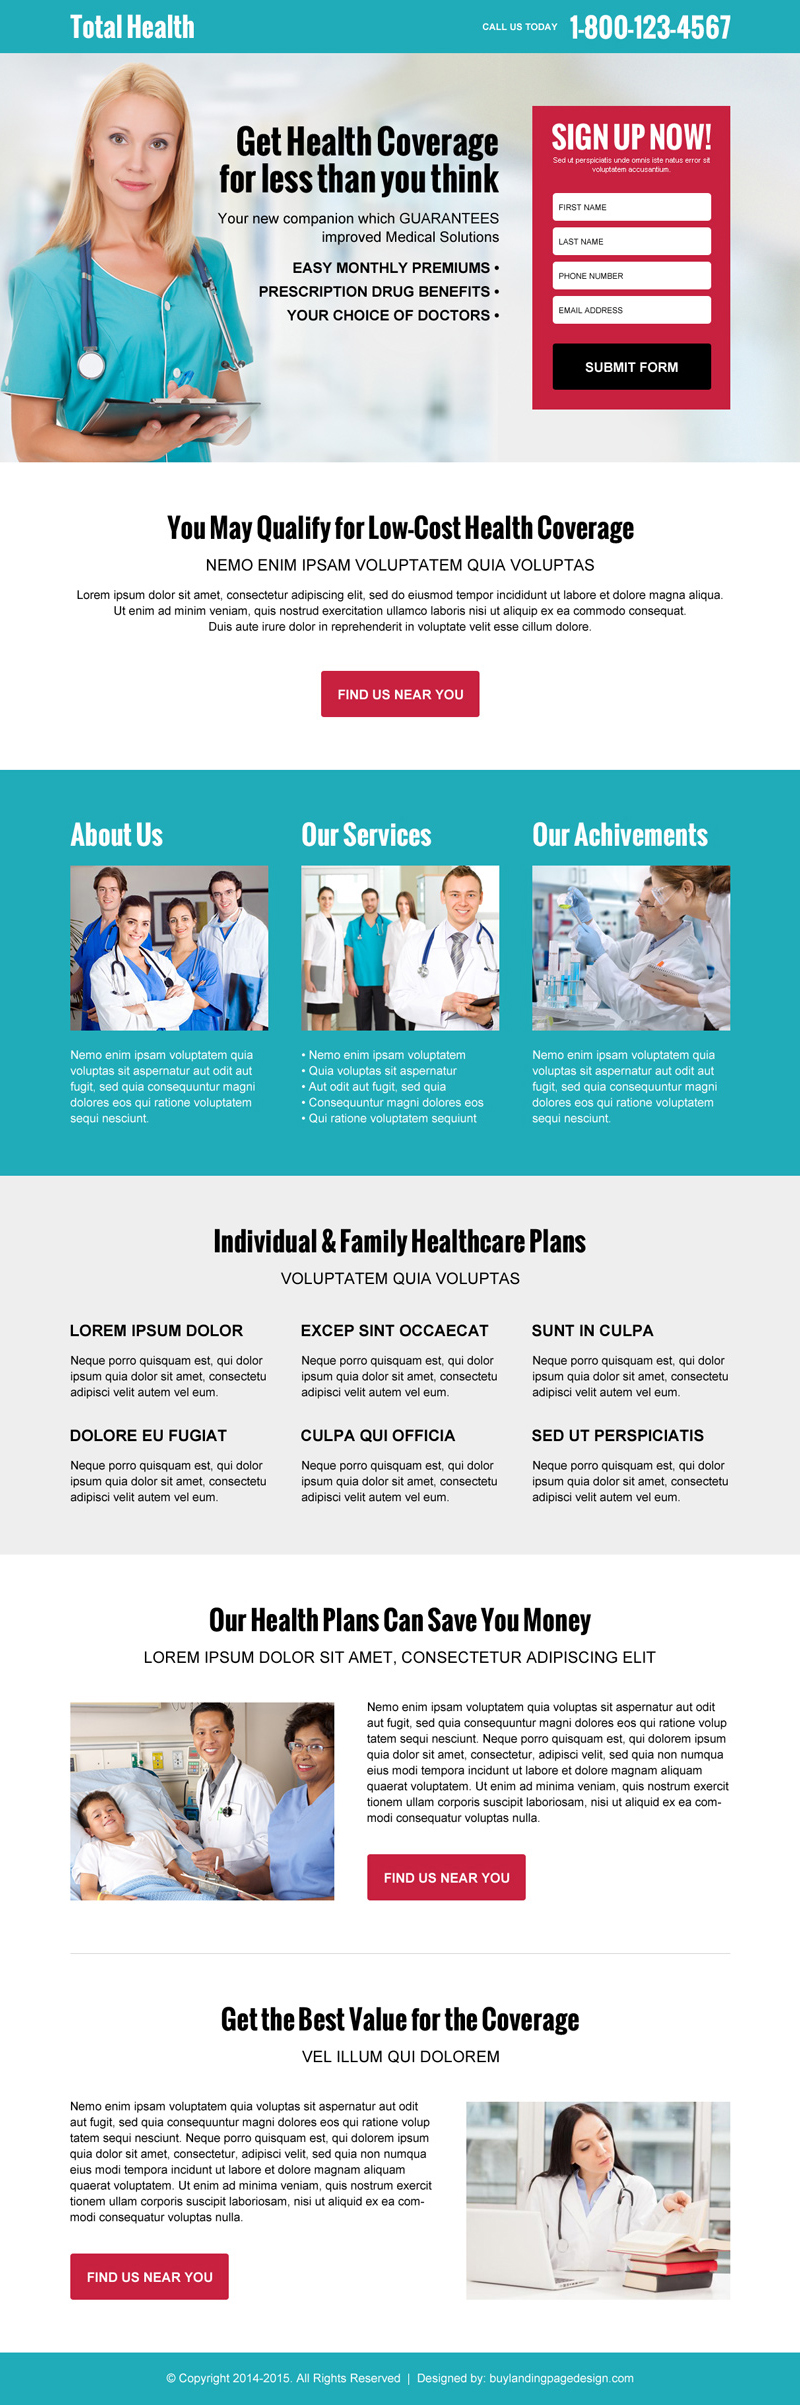 medical-health-service-quote-service-best-converting-responsive-landing-page-design-template-003